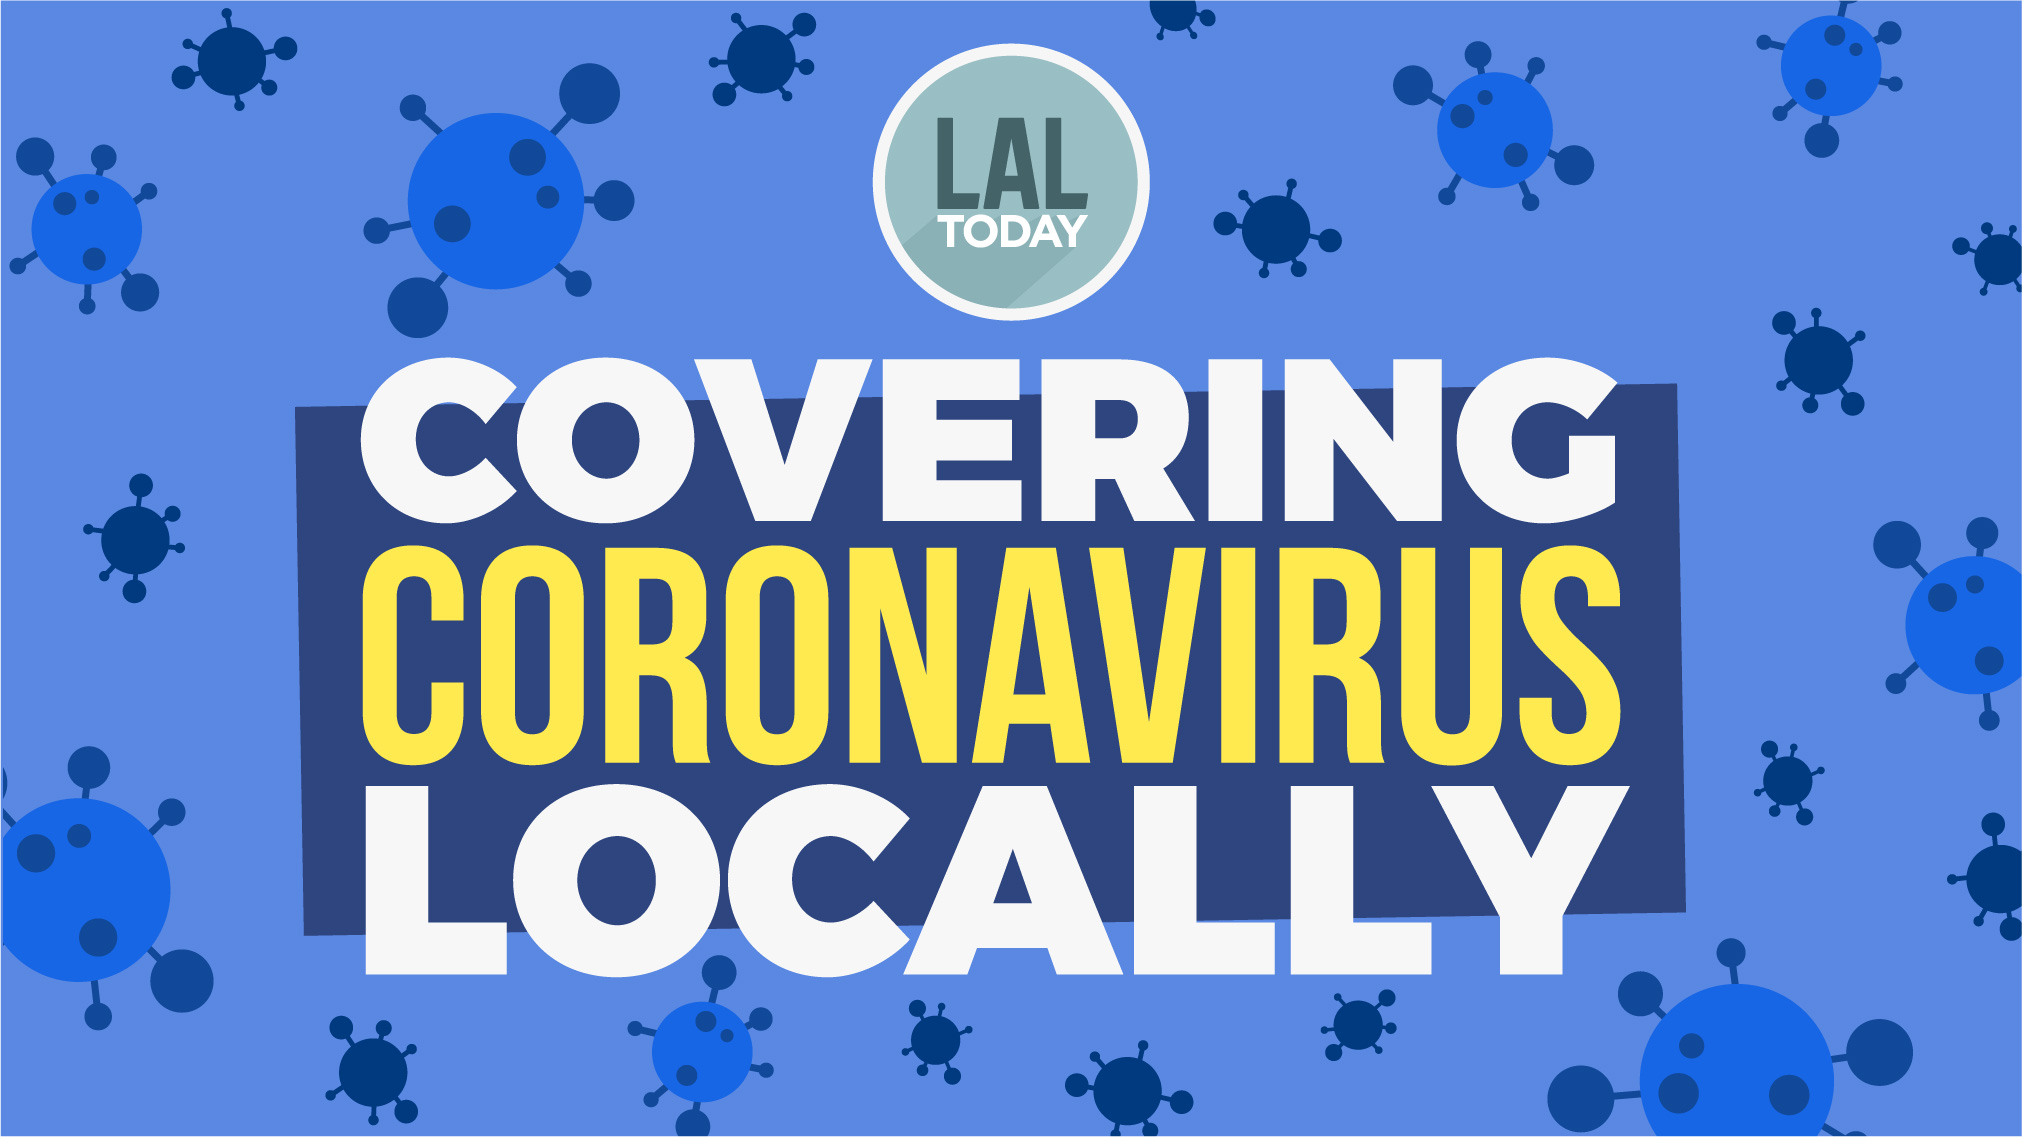 Saturday Ocrover 27 2020 Halloween Parties Polk County Coronavirus: The latest local updates, cancellations, resources, +